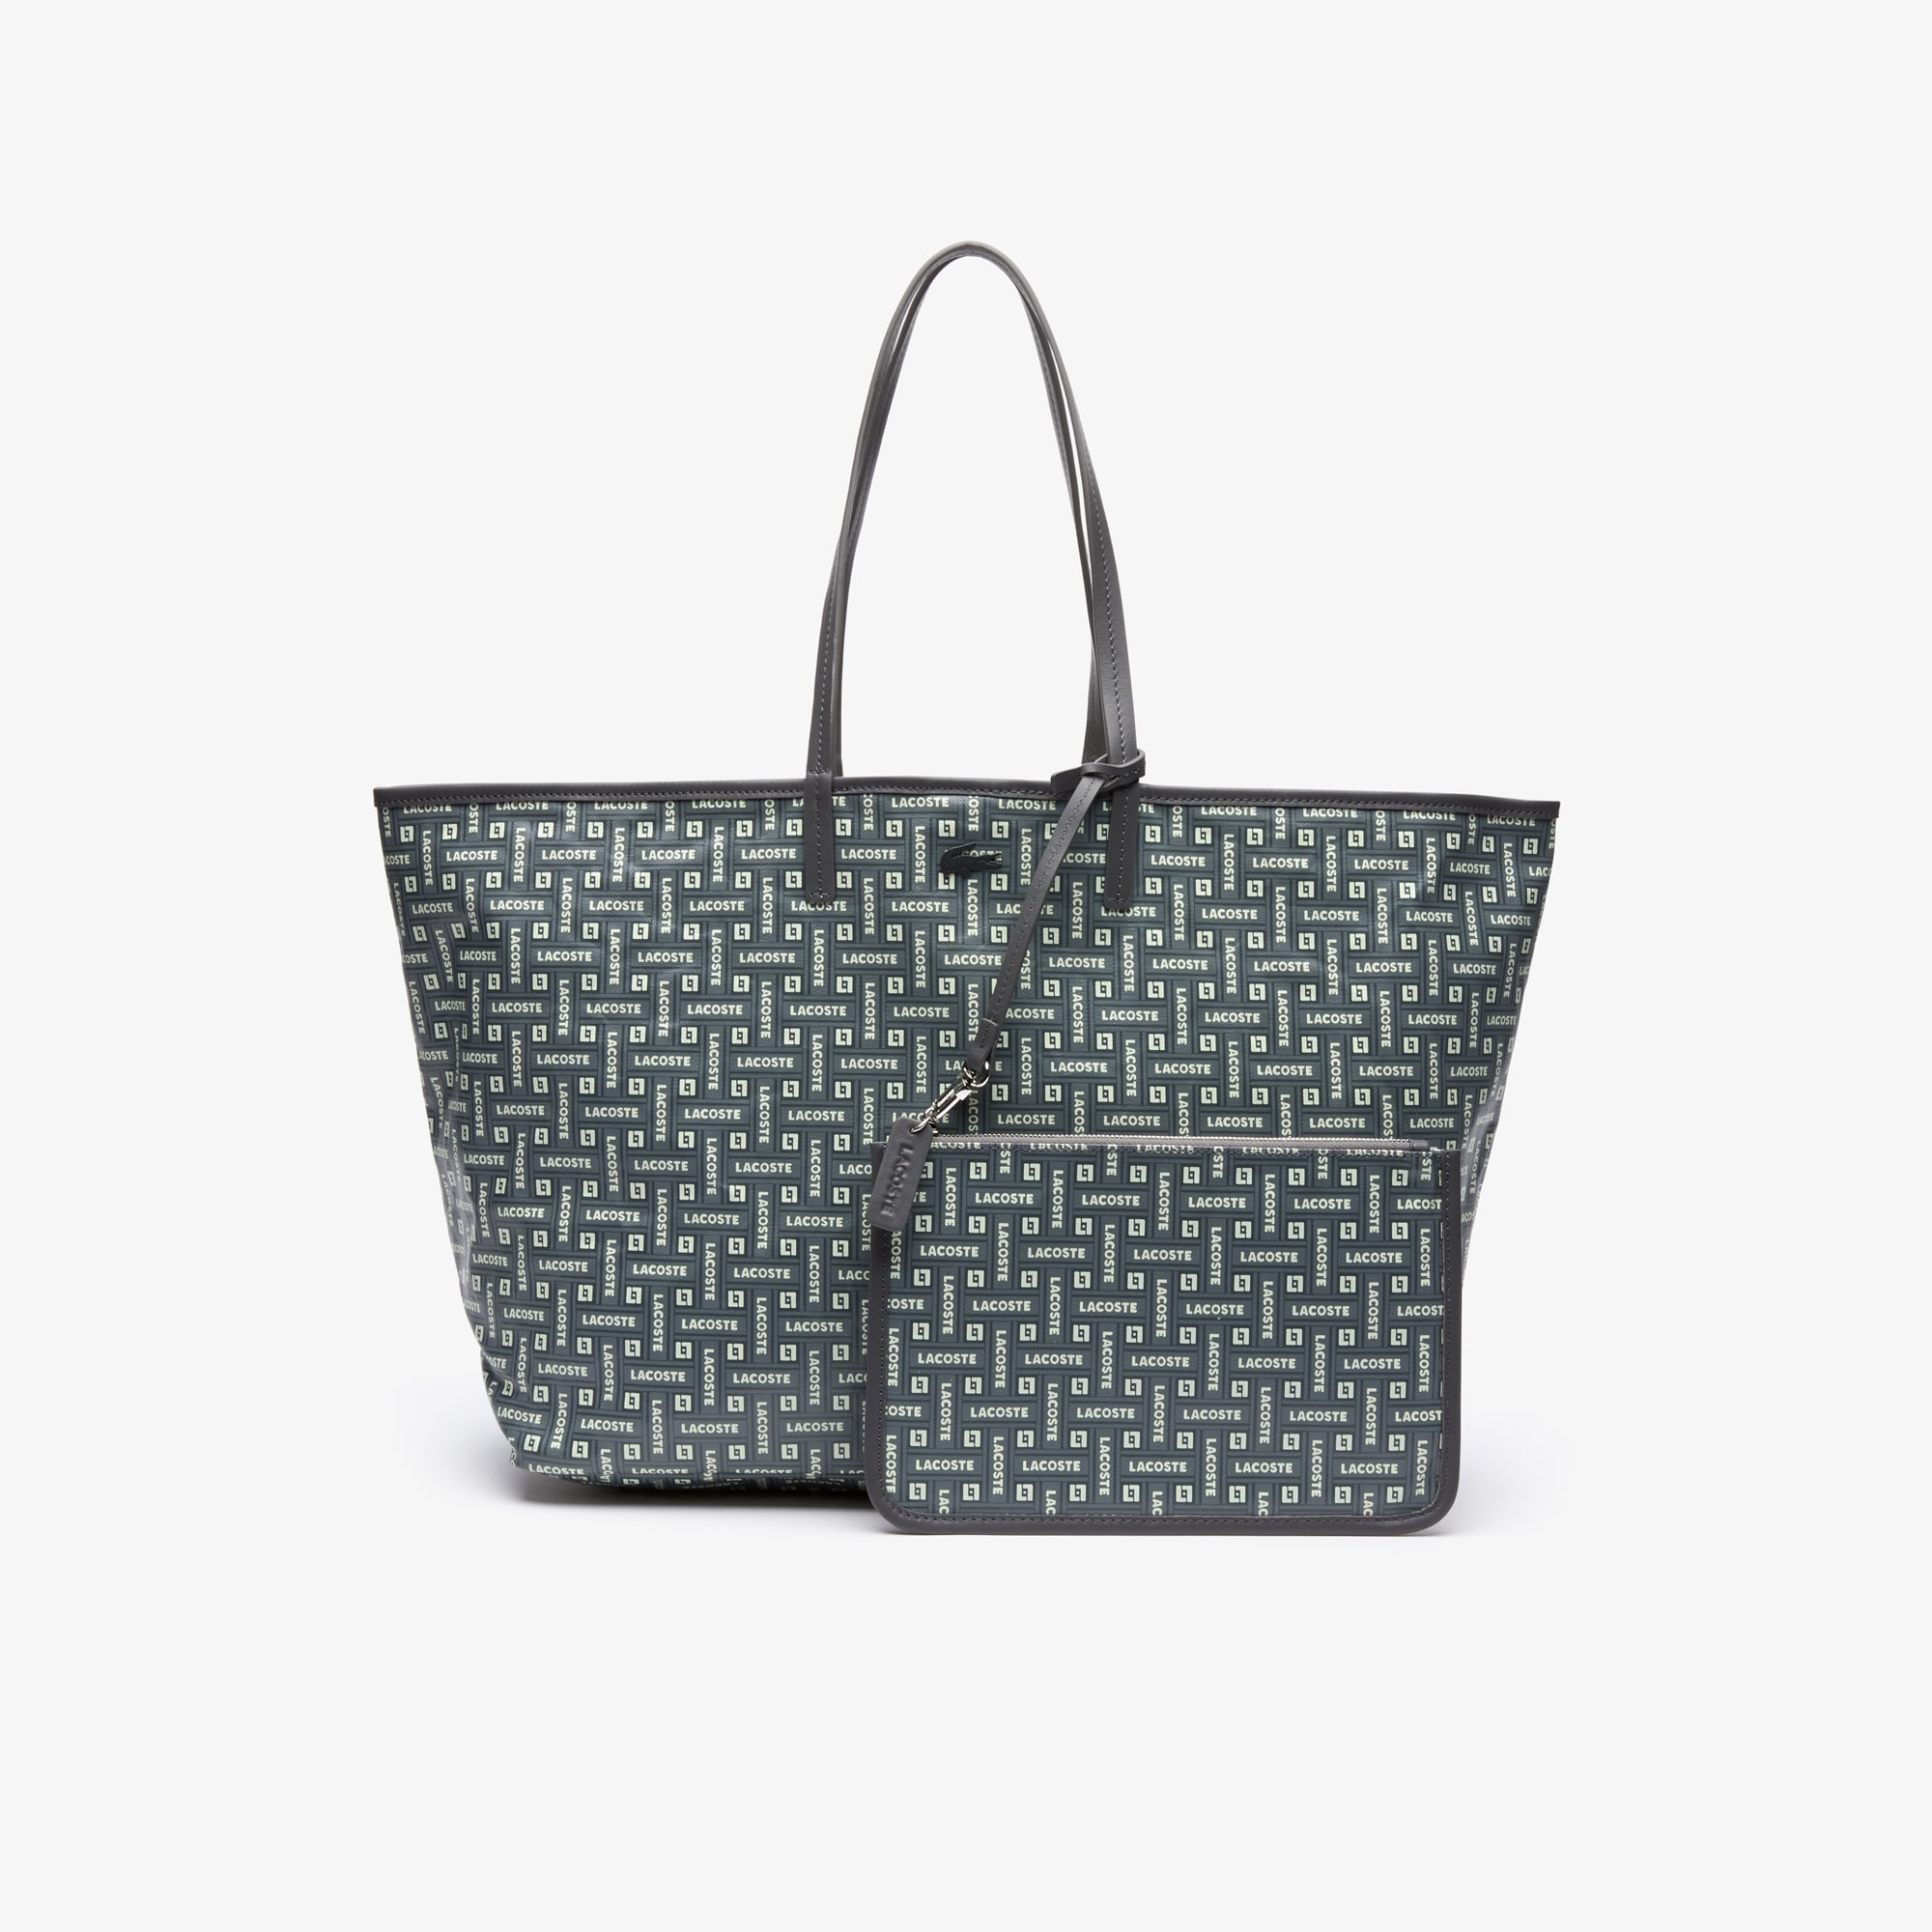 84b385bee3d + 1 color. 40% off. Women's Large Coated Cotton Canvas Tote Bag. $117.99.  $198.00. BLACK; PEACOAT; FEATHER GRAY. + 2 colors